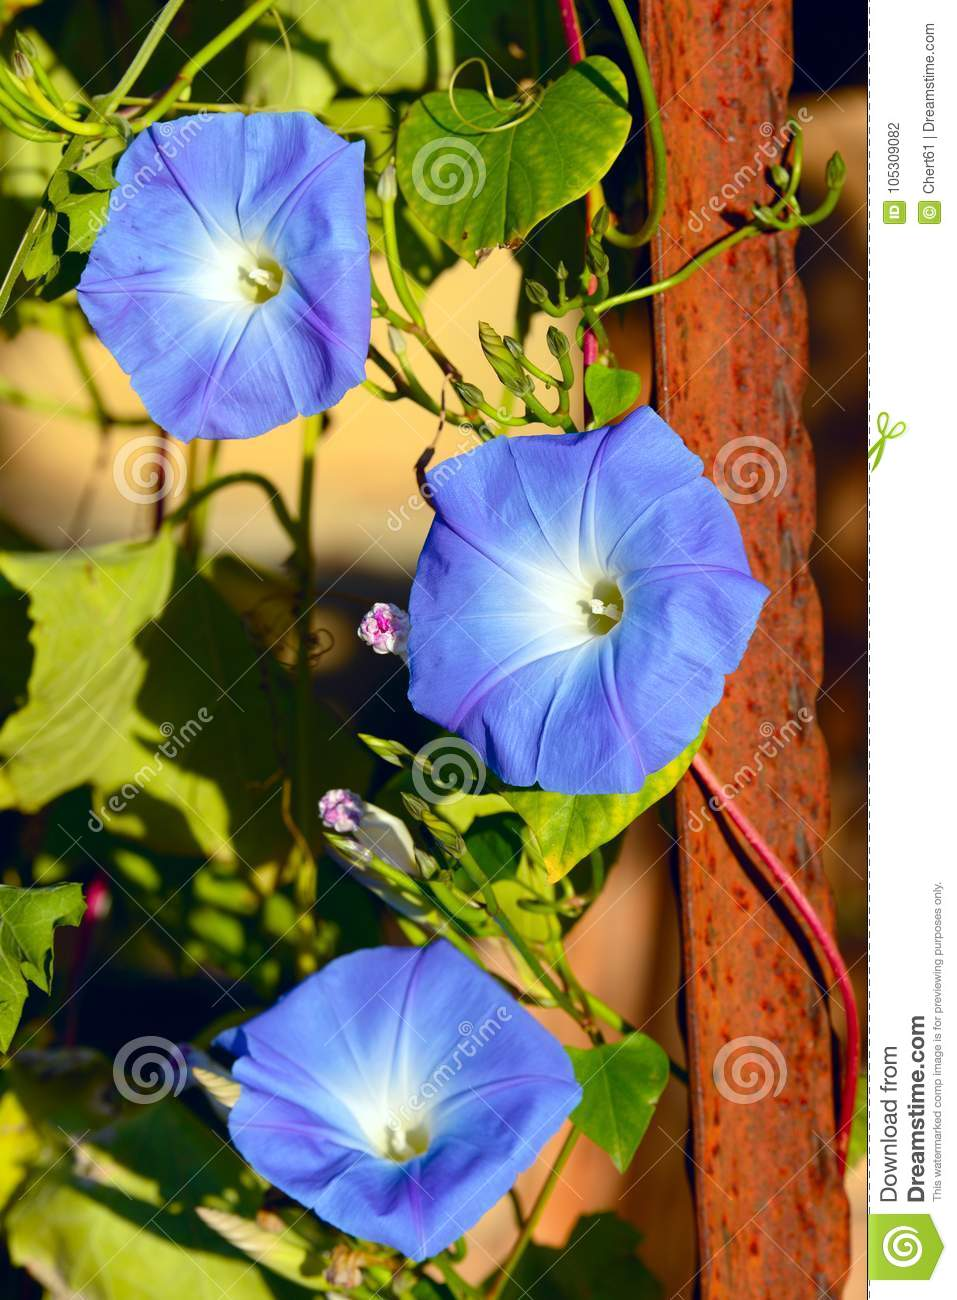 Blue White And Yellow Stock Photo Image Of Blossom 105309082